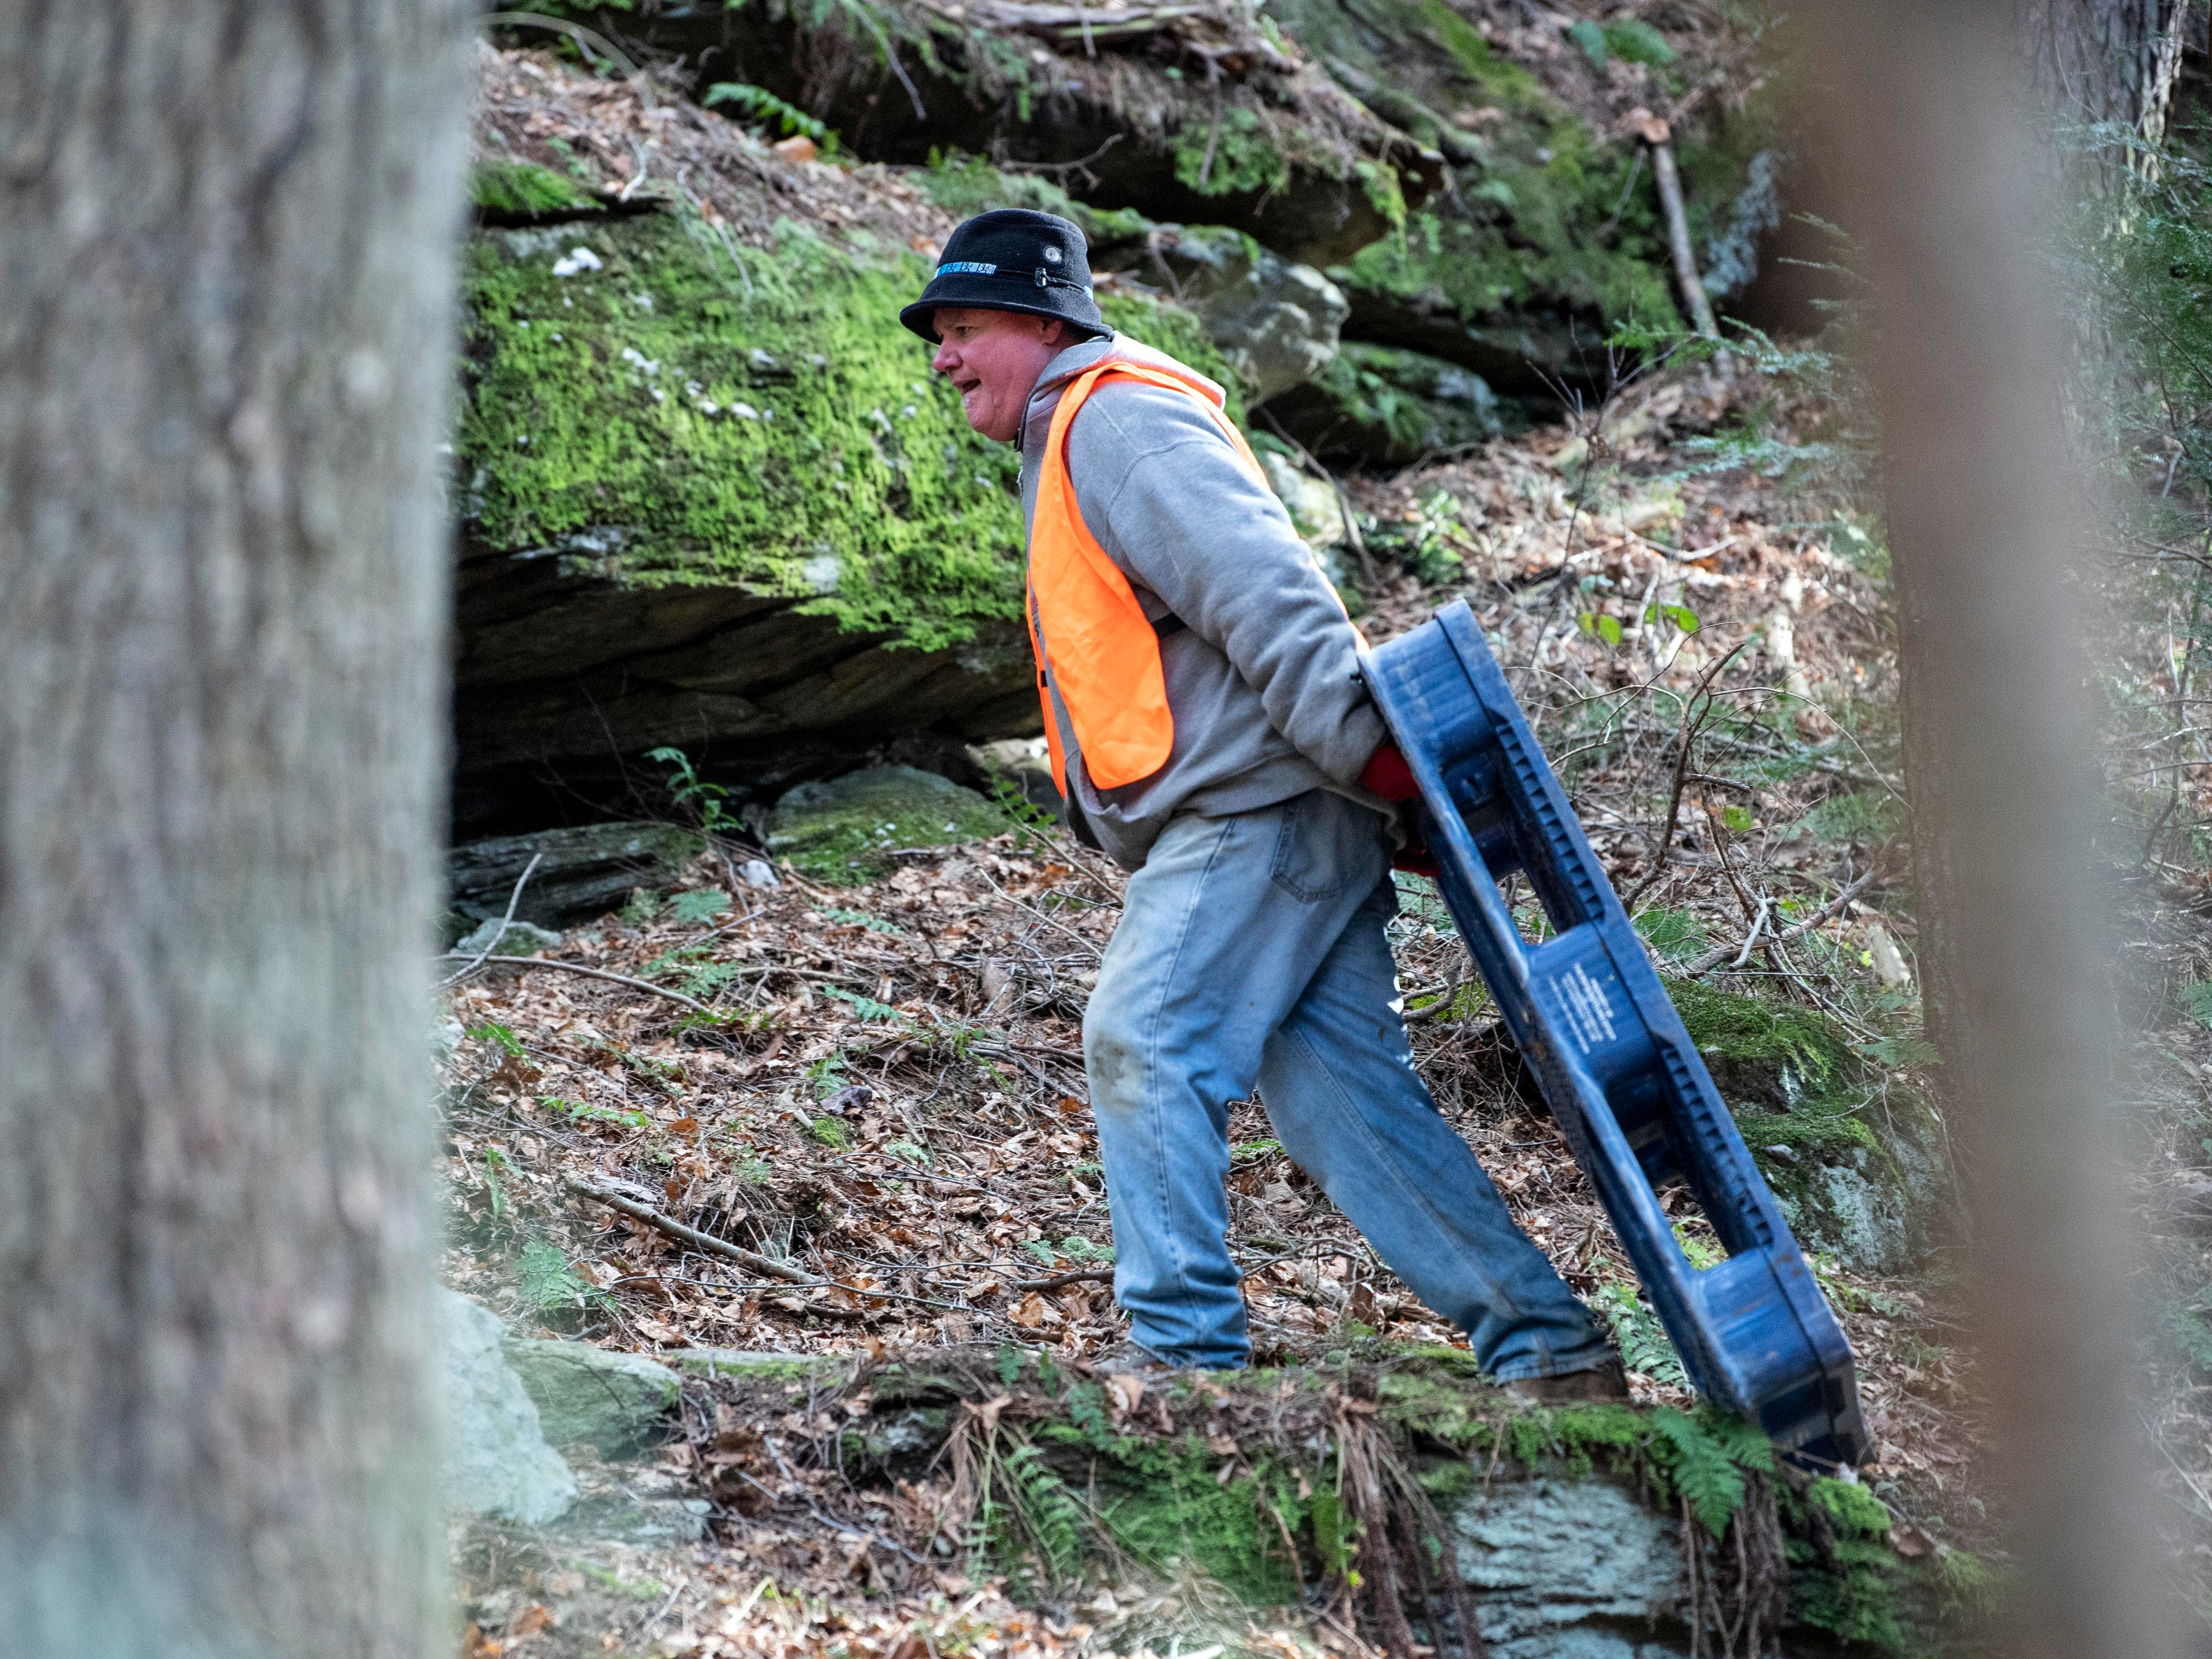 Kirk Piper, who was volunteering all day to help clean up the river, pulls a plastic pallet up the trail, Thursday, Jan. 10, 2019. Flooding that ravaged many parts of York County in Aug. 2018 swept debris into Otter Creek, in Airville.